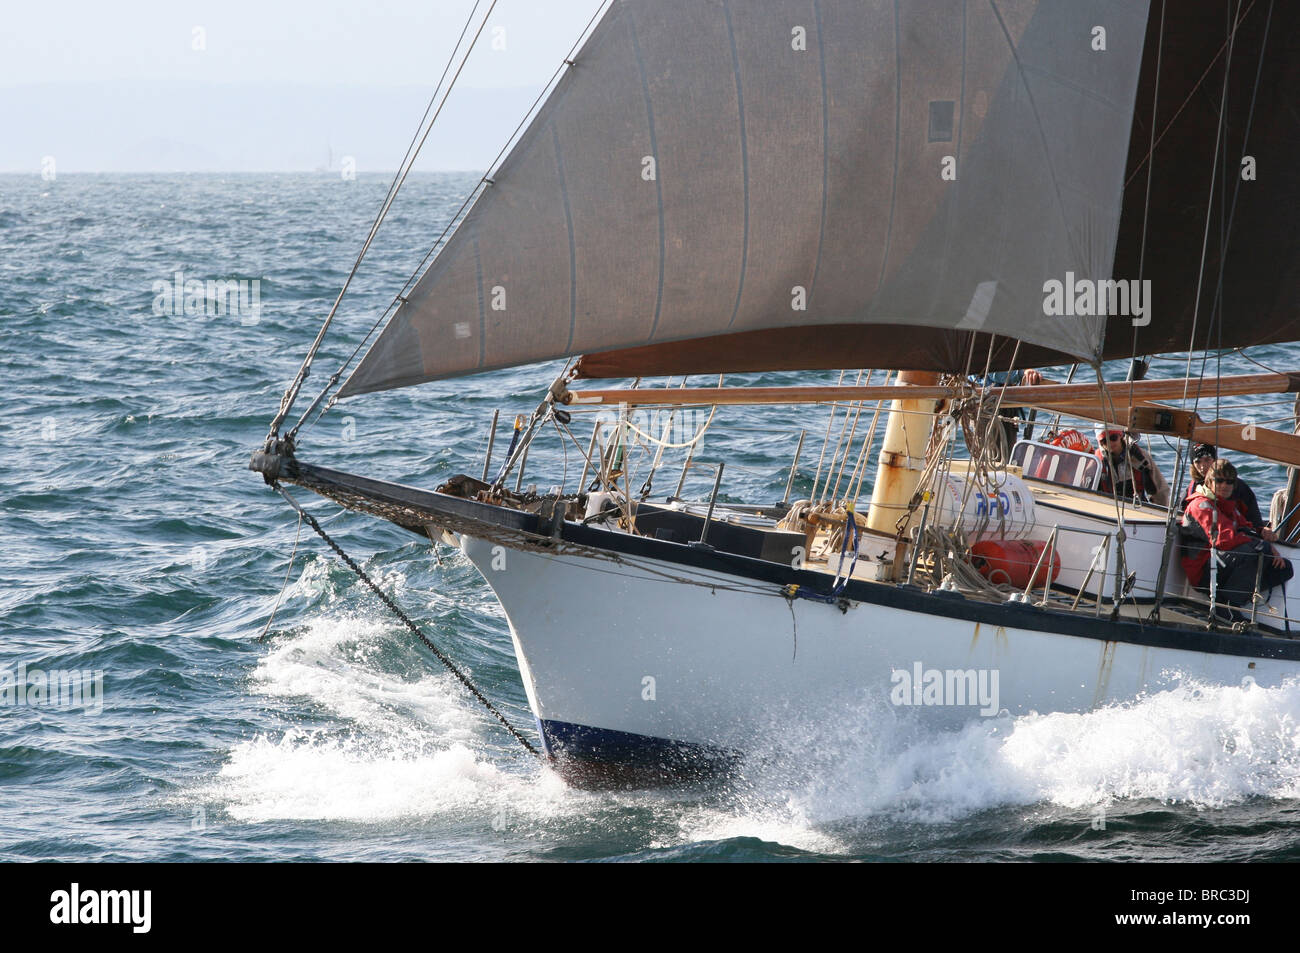 Morning Star, The Tall Ships Races 2010, Kristiansand - Stock Image